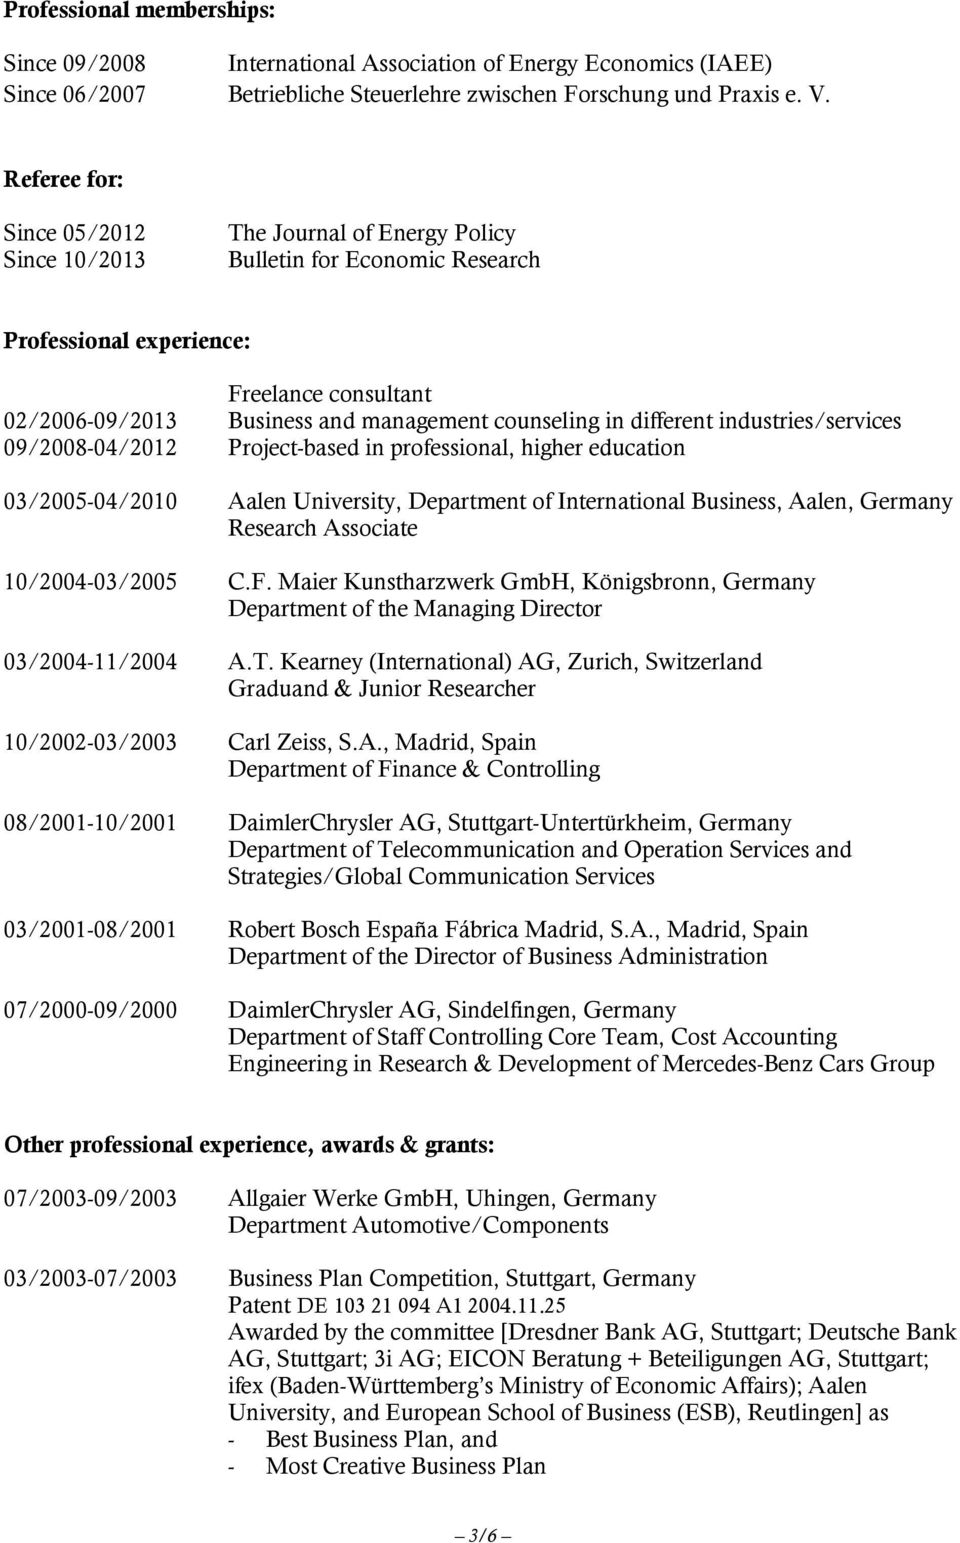 in different industries/services 09/2008-04/2012 Project-based in professional, higher education 03/2005-04/2010 Aalen University, Department of International Business, Aalen, Germany Research